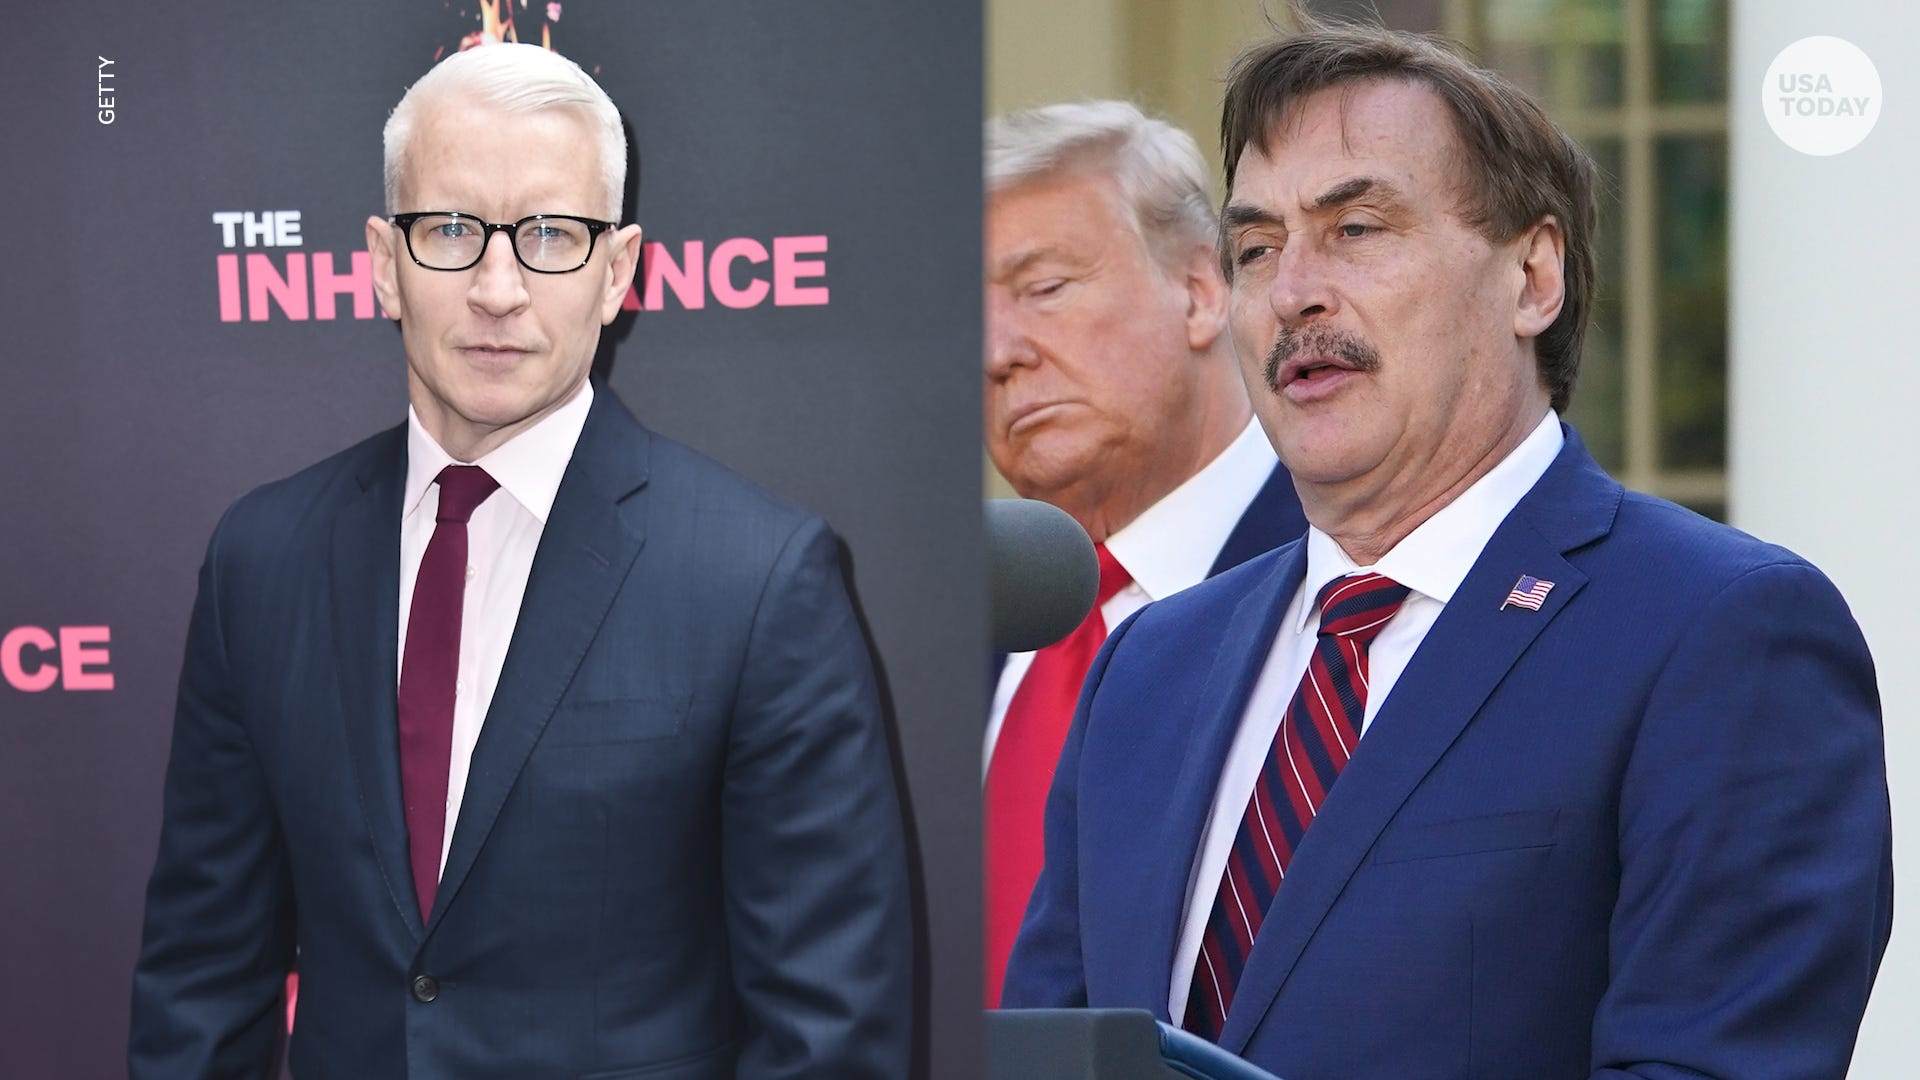 Anderson Cooper Mypillow Founder Mike Lindell Spar Over Covid Cure Claim